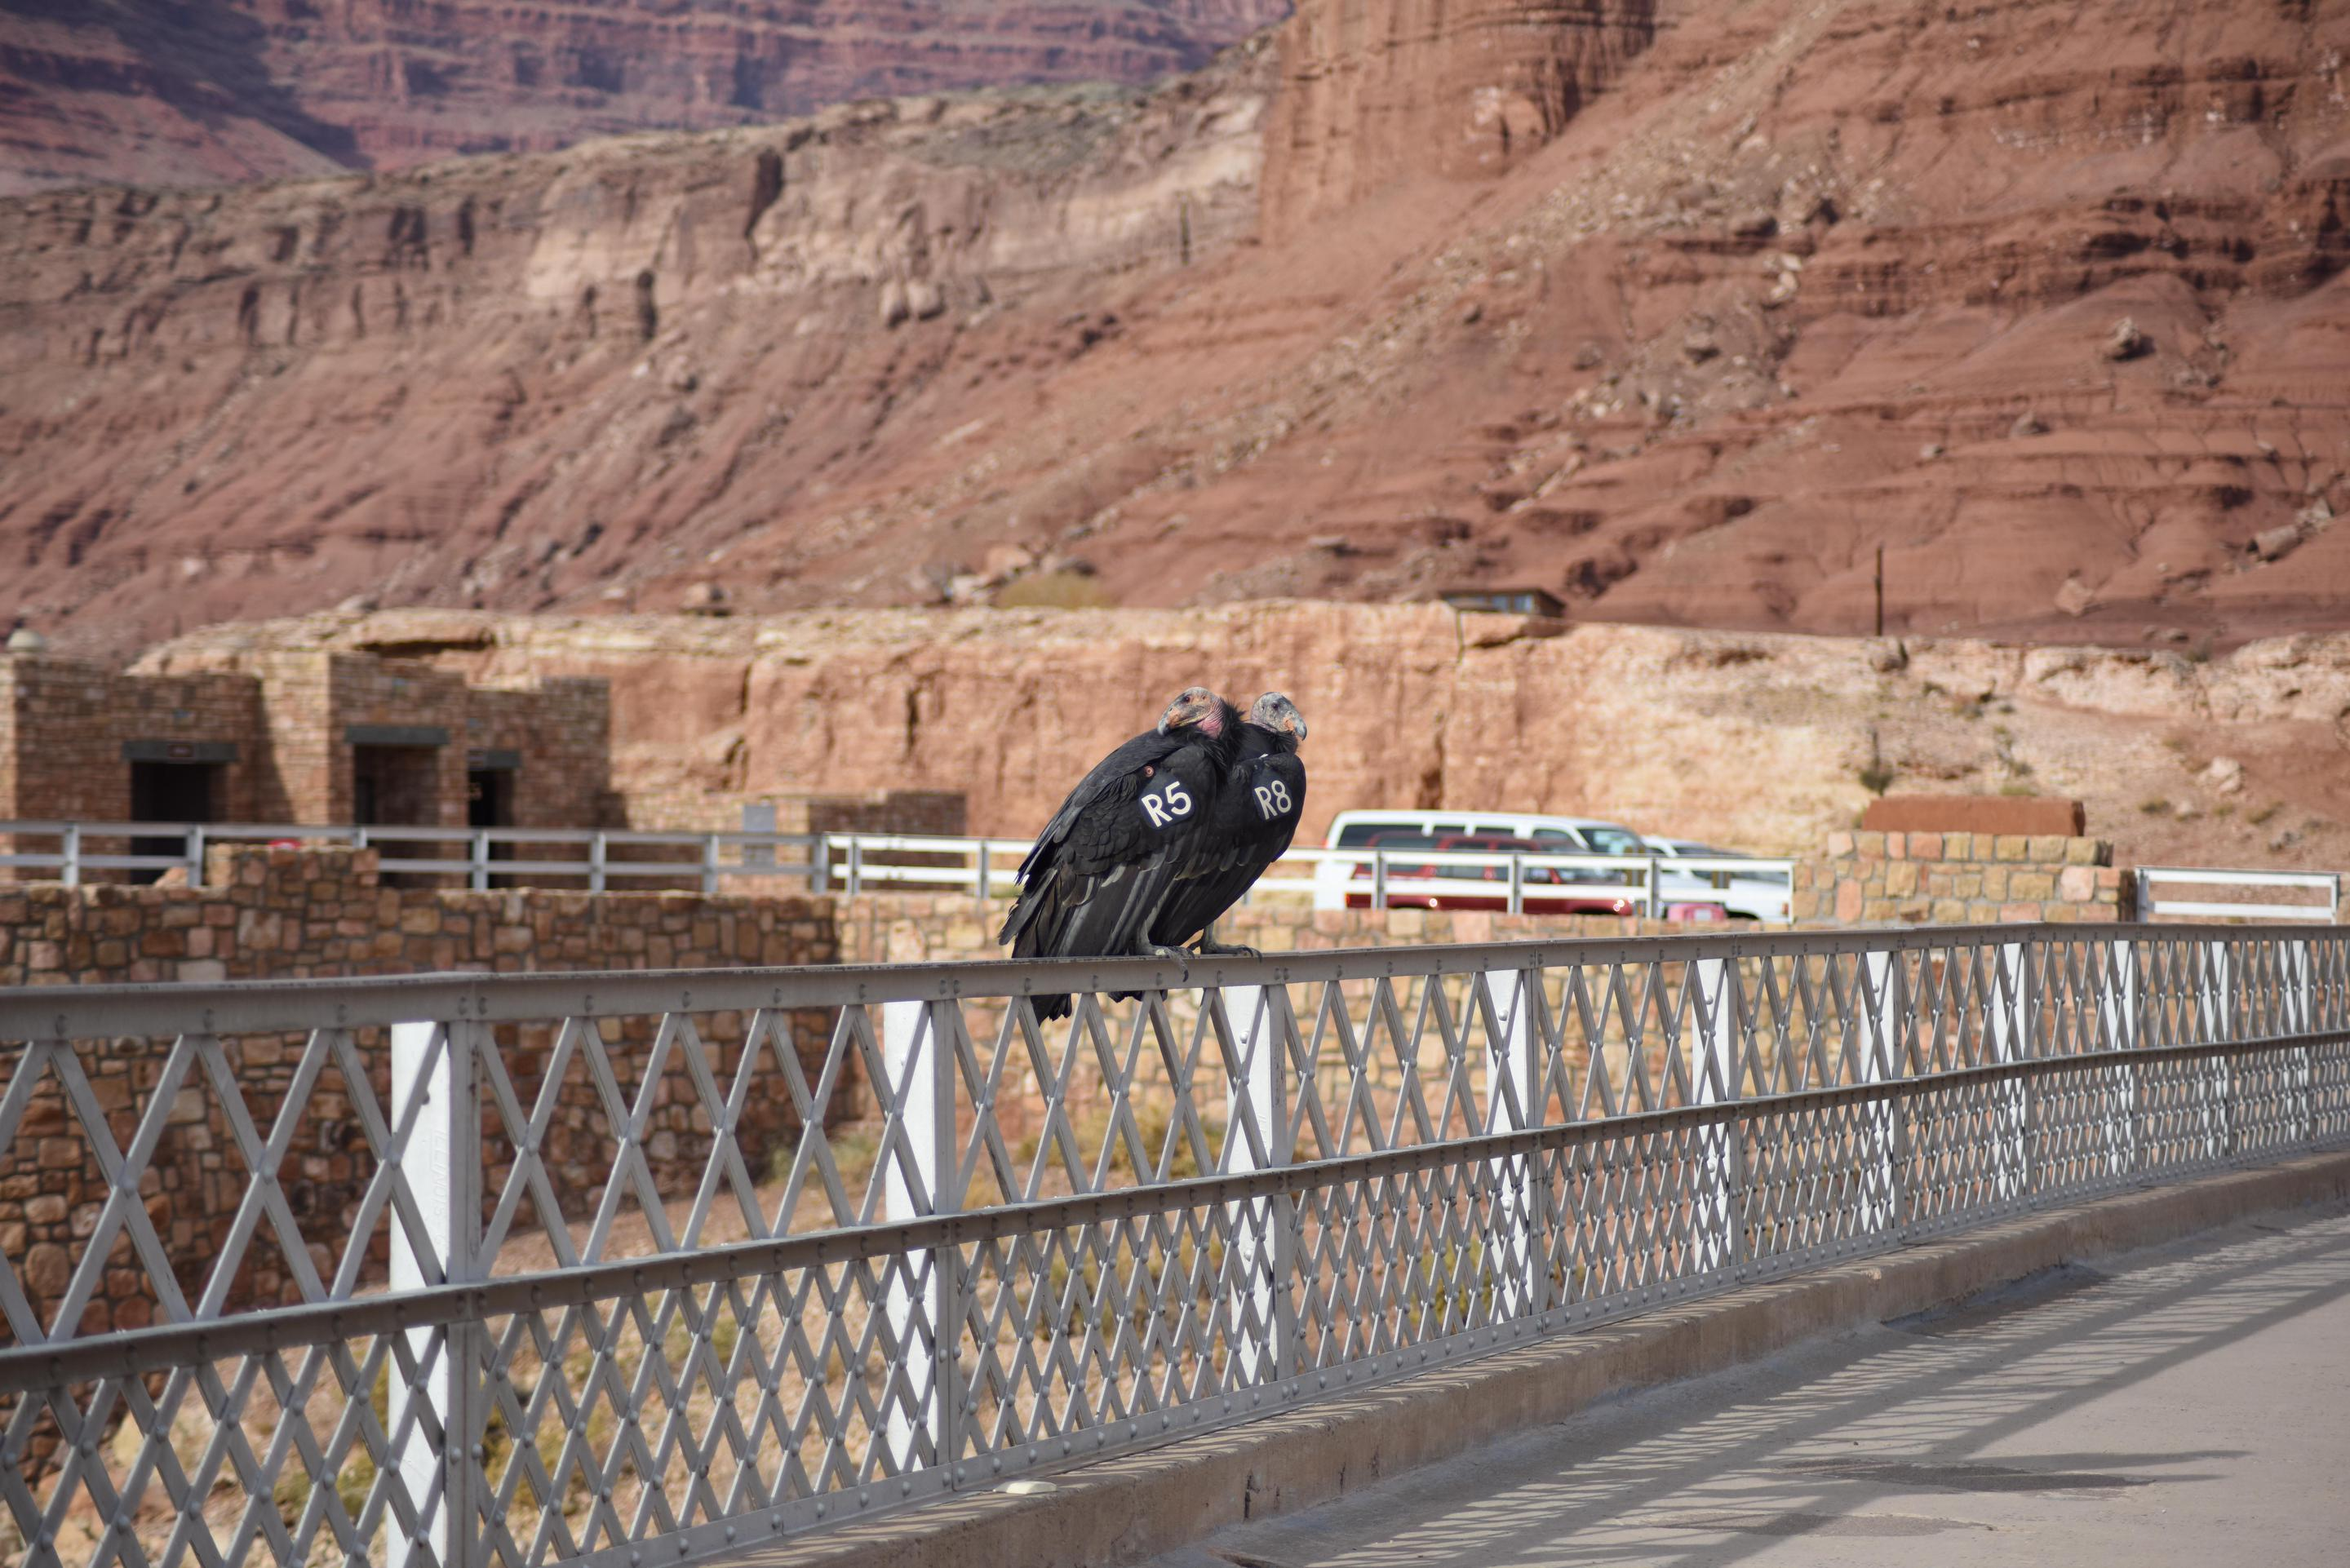 Candors on the historic Navajo BridgeYou never know who you might meet on your walk across the historic Navajo Bridge.